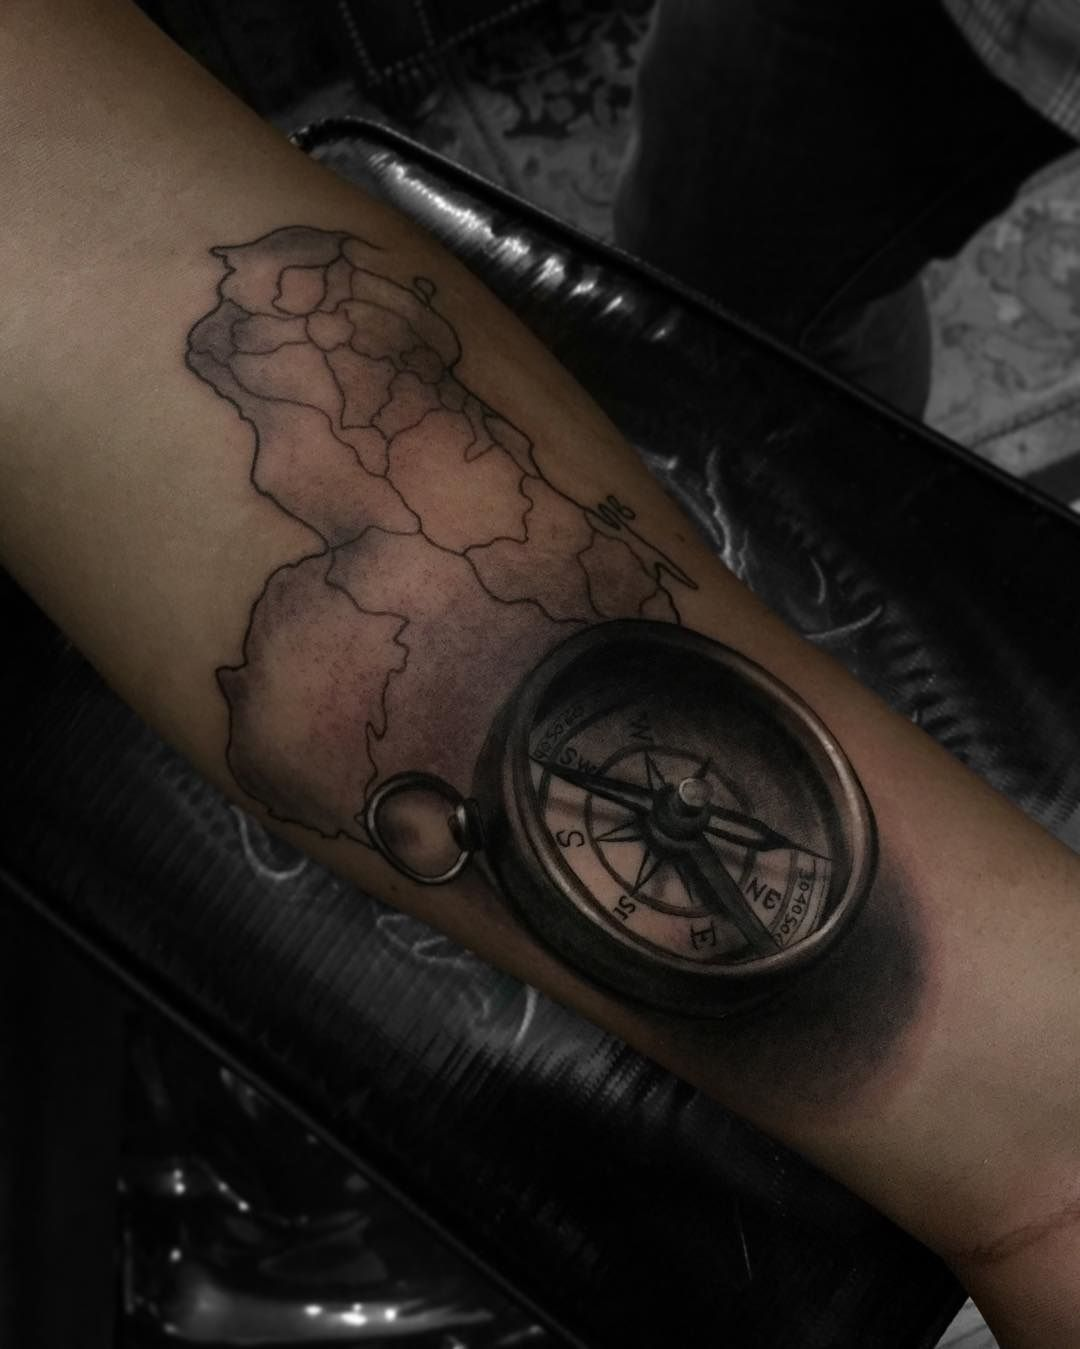 Venezuela Map Compass Arm Tattoos Tatuaje De Venezuela